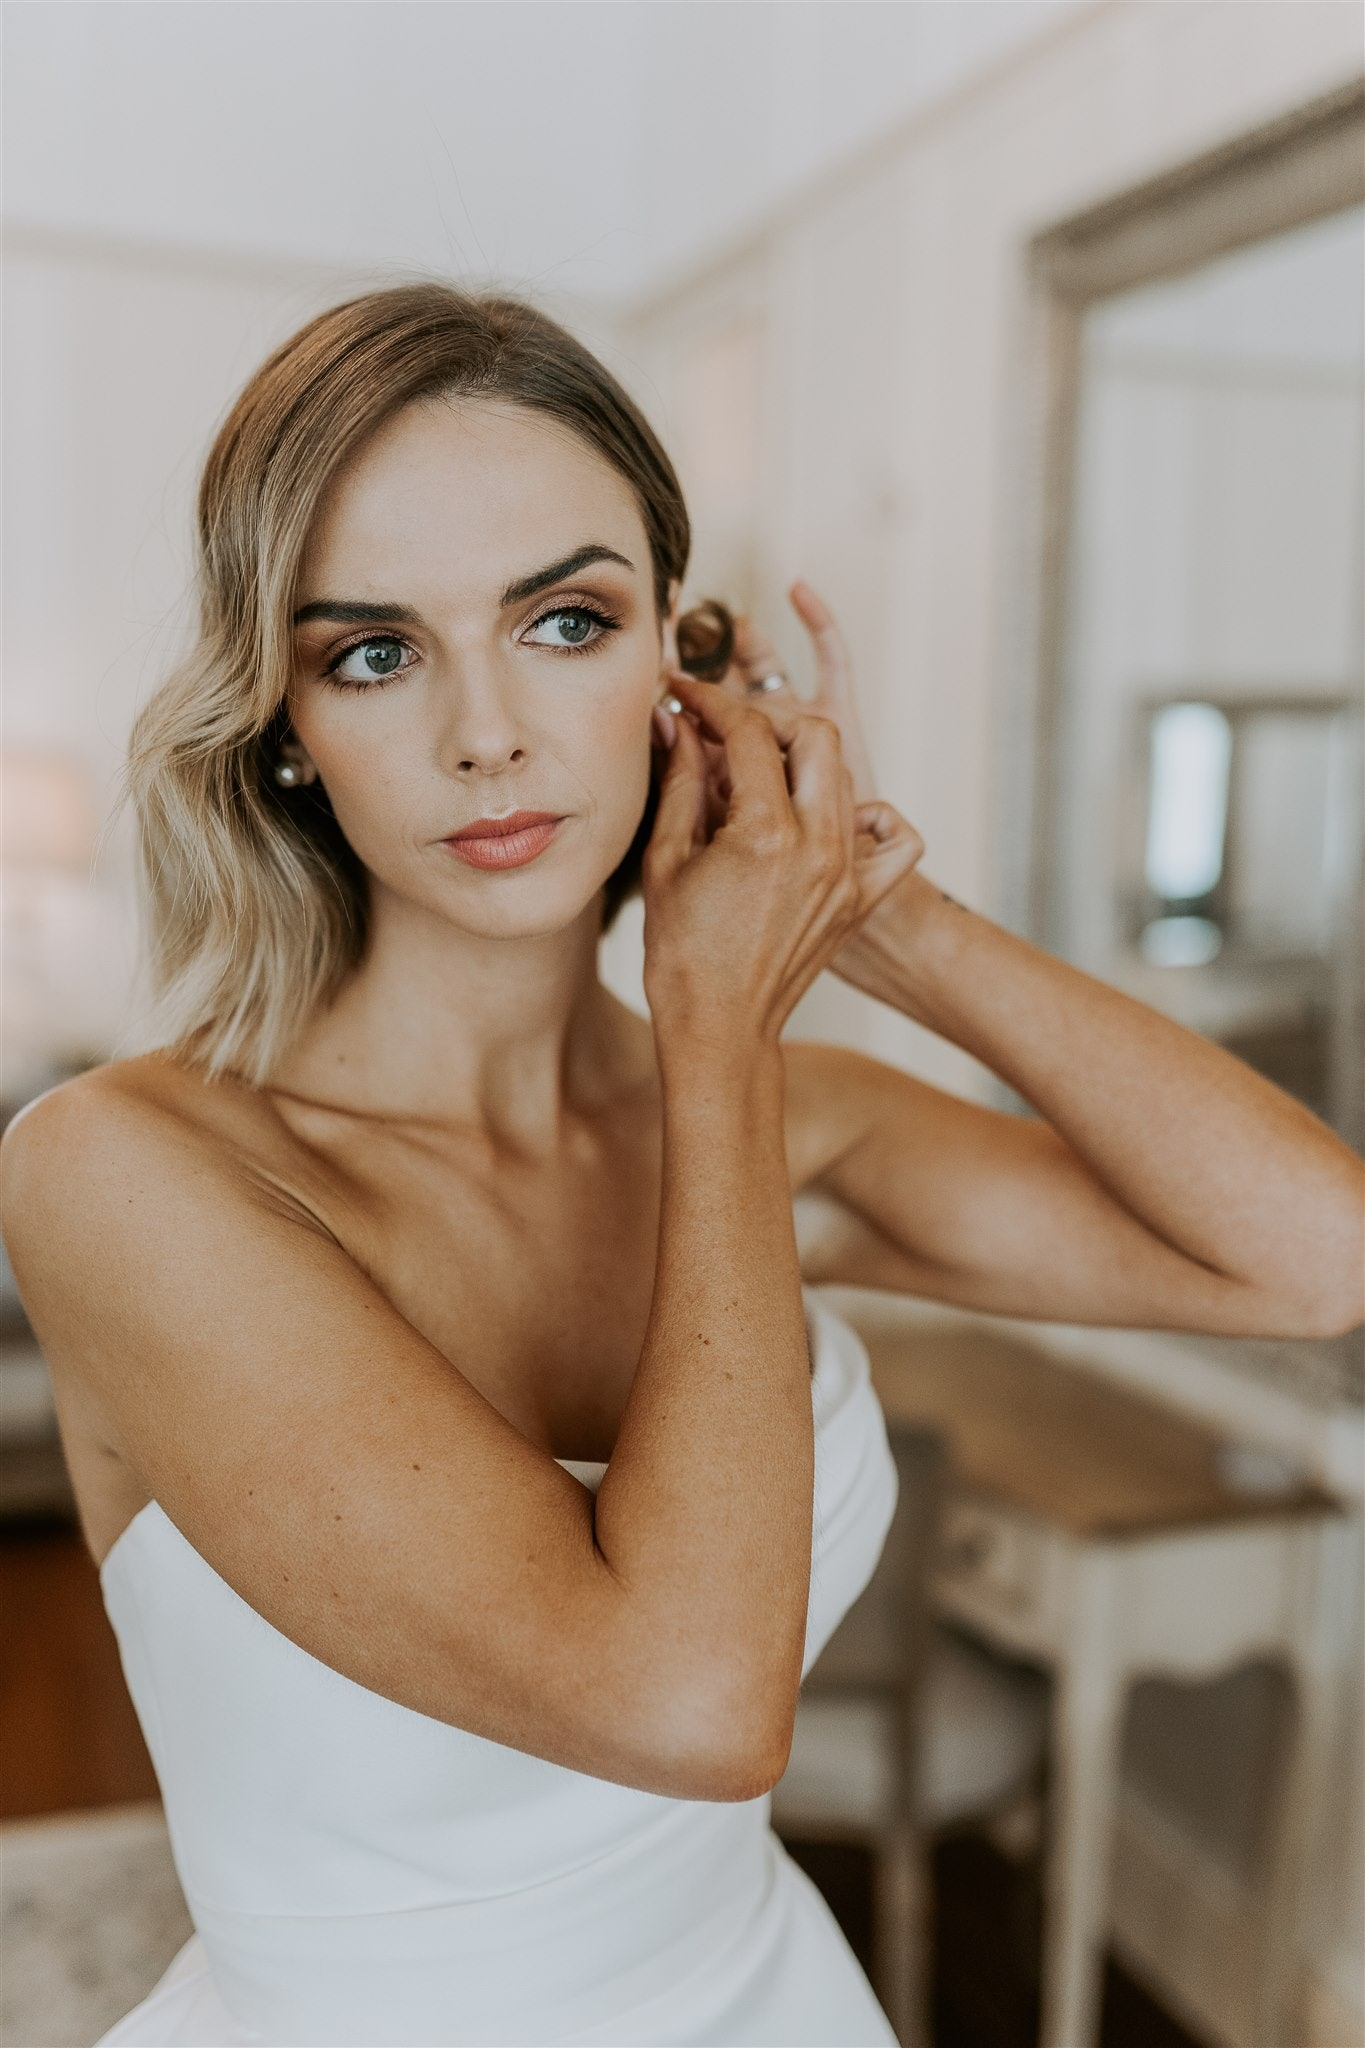 Bride with  makeup on putting earrings in